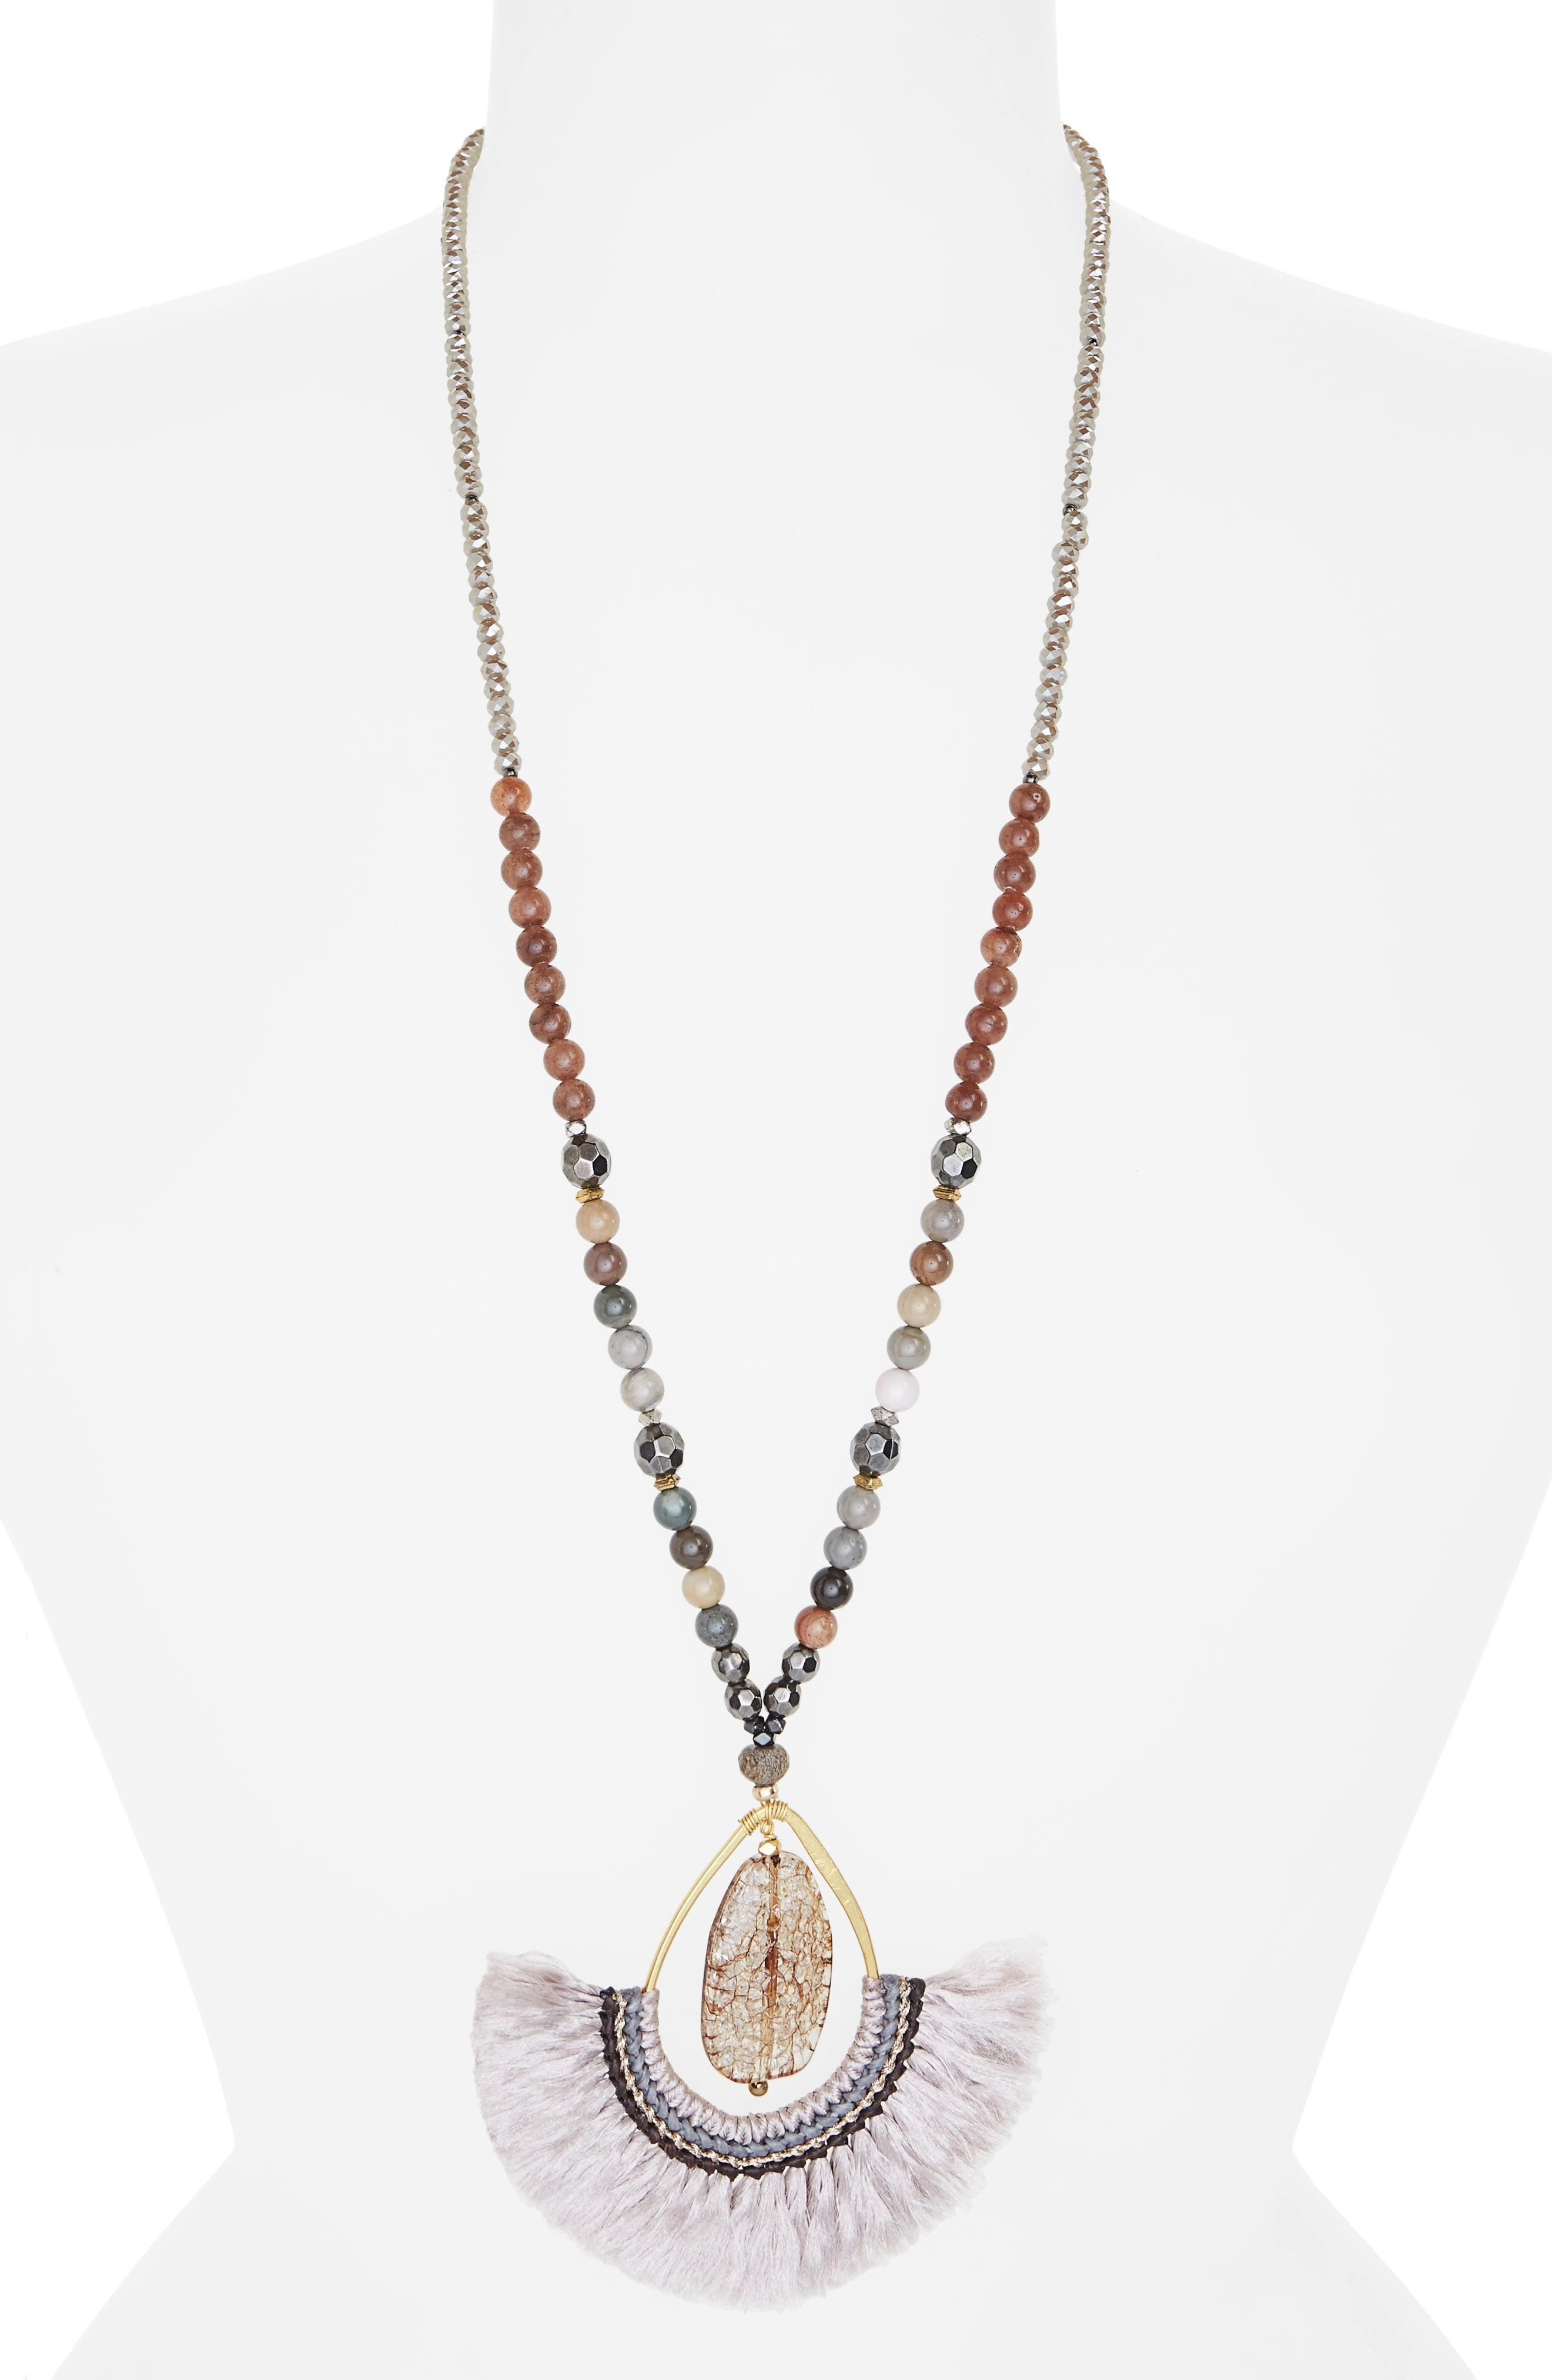 Fringed Agate Teardrop Pendant Necklace,                             Main thumbnail 1, color,                             250